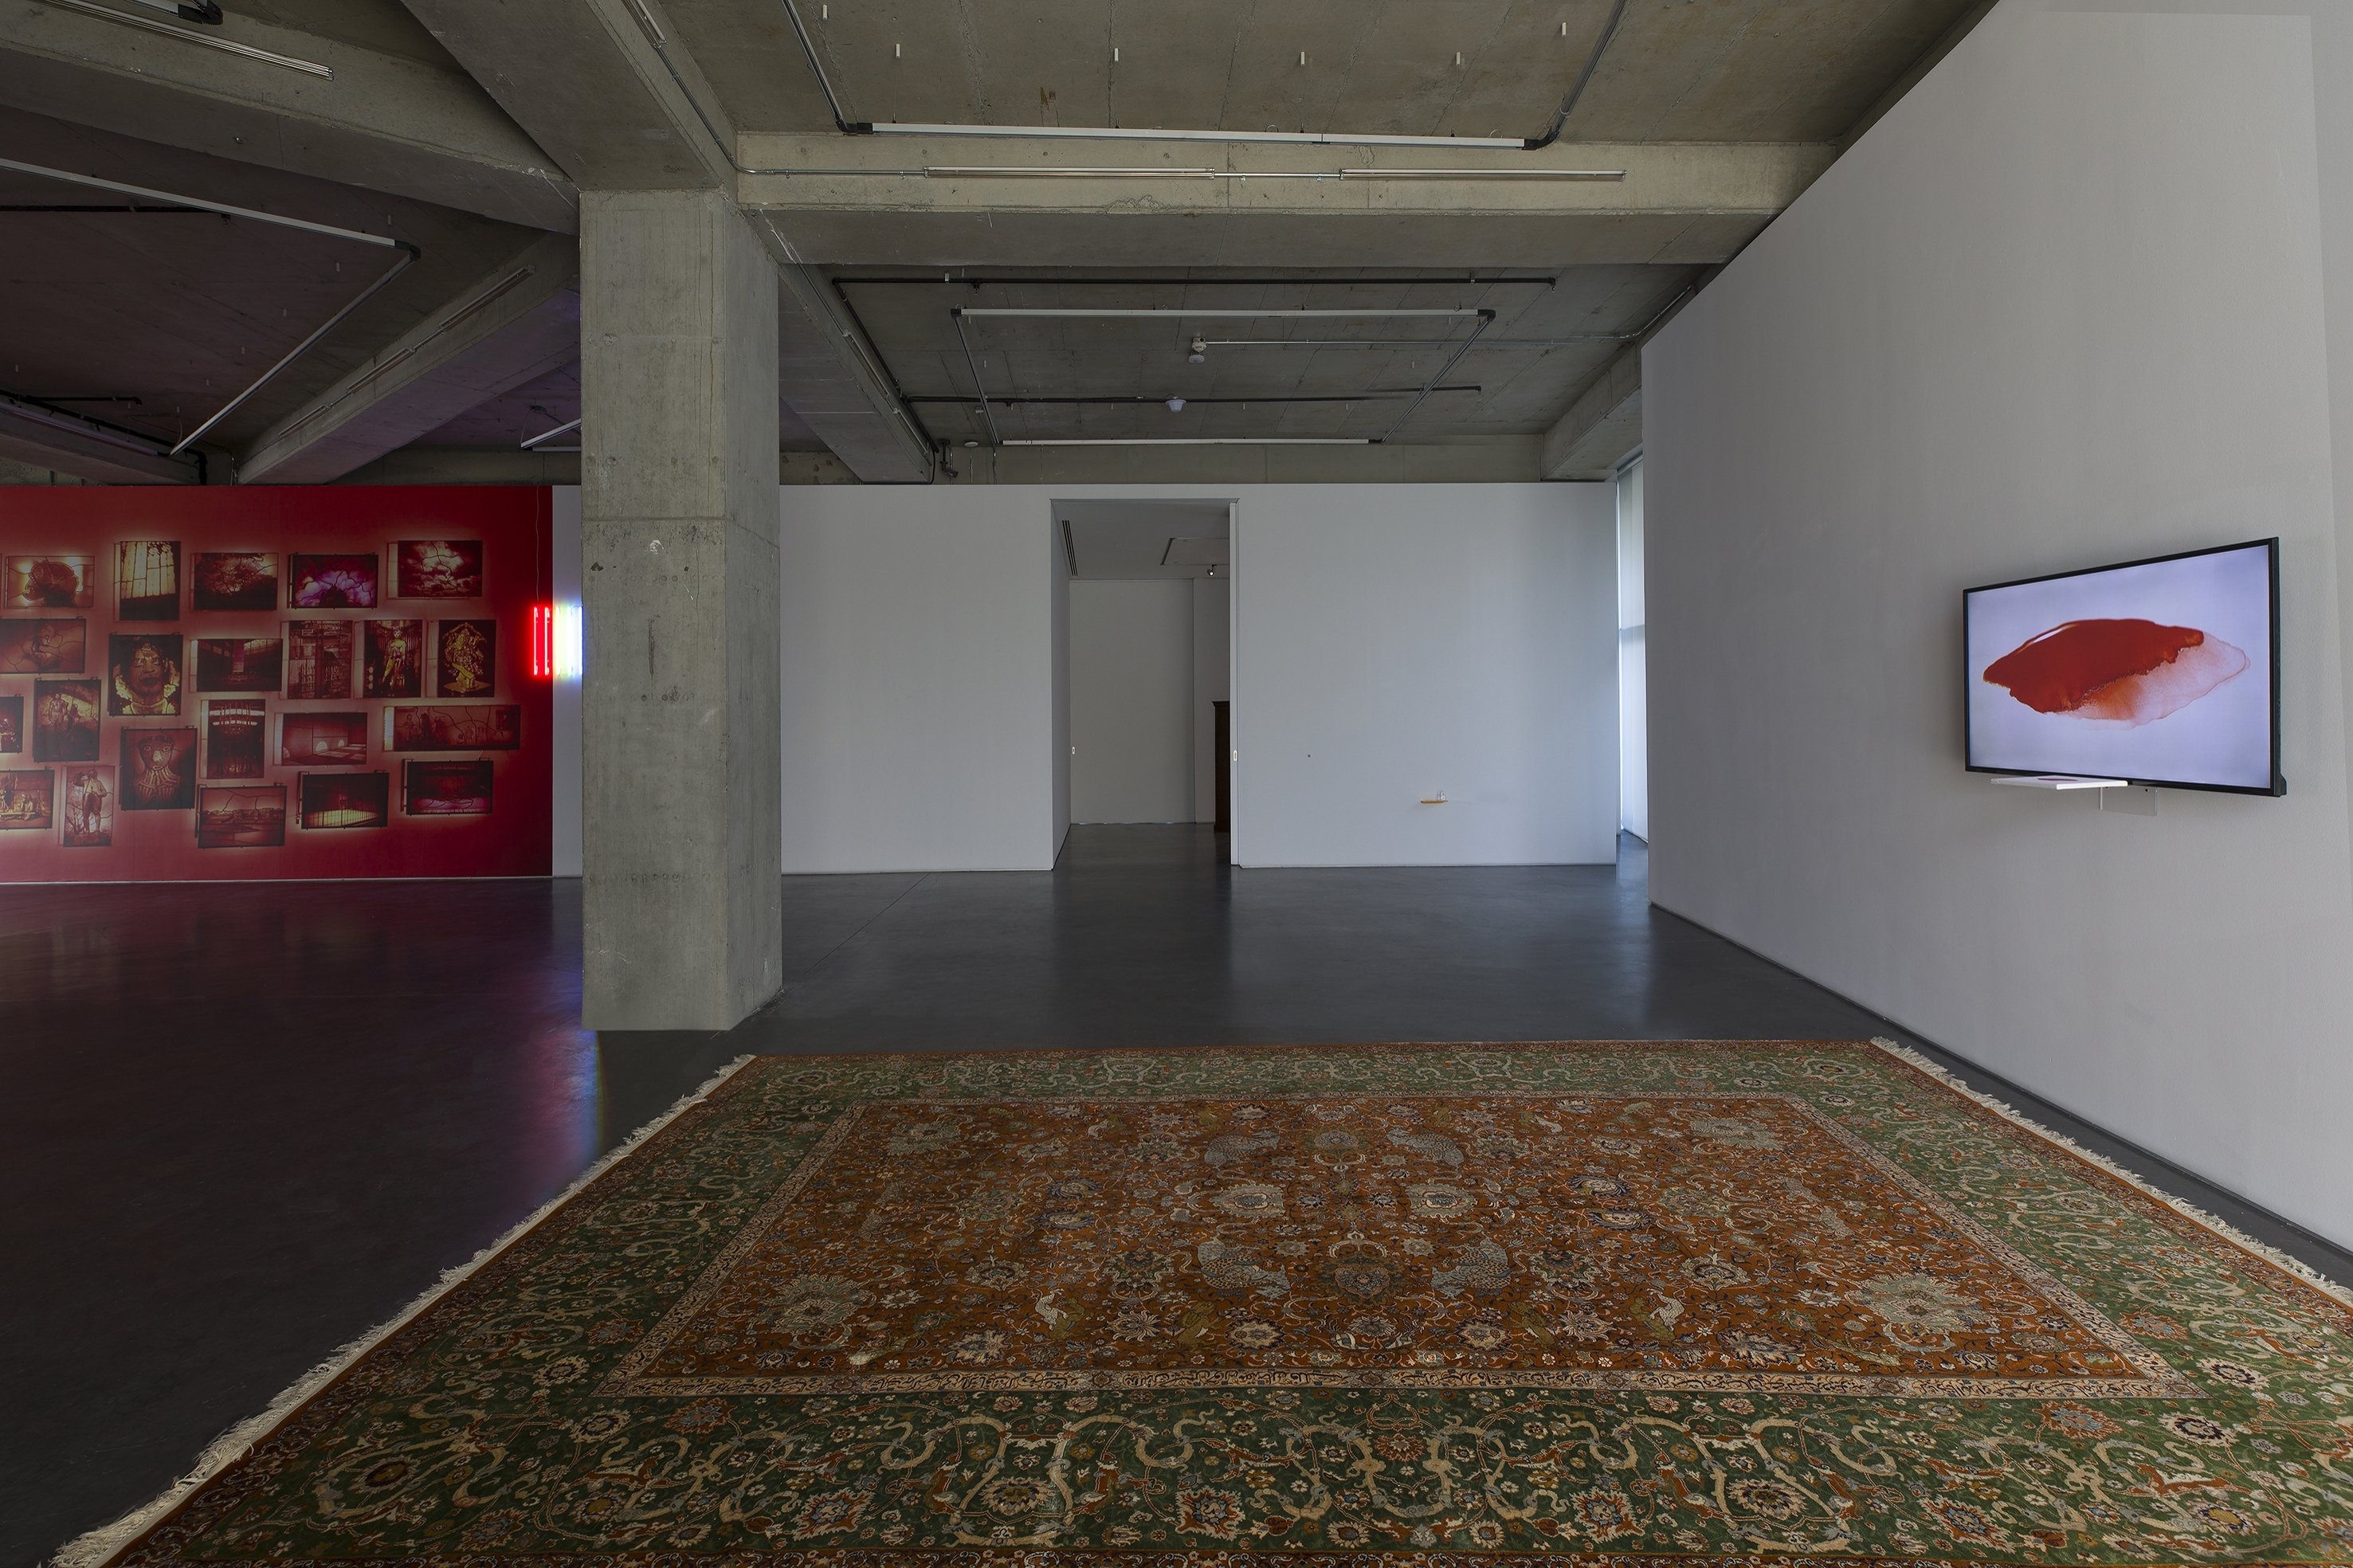 The Persian rug in the front of an original painting by Sarkis, which is enlarged as a video, at Dirimart Gallery, Istanbul. (Courtesy of Dirimart)